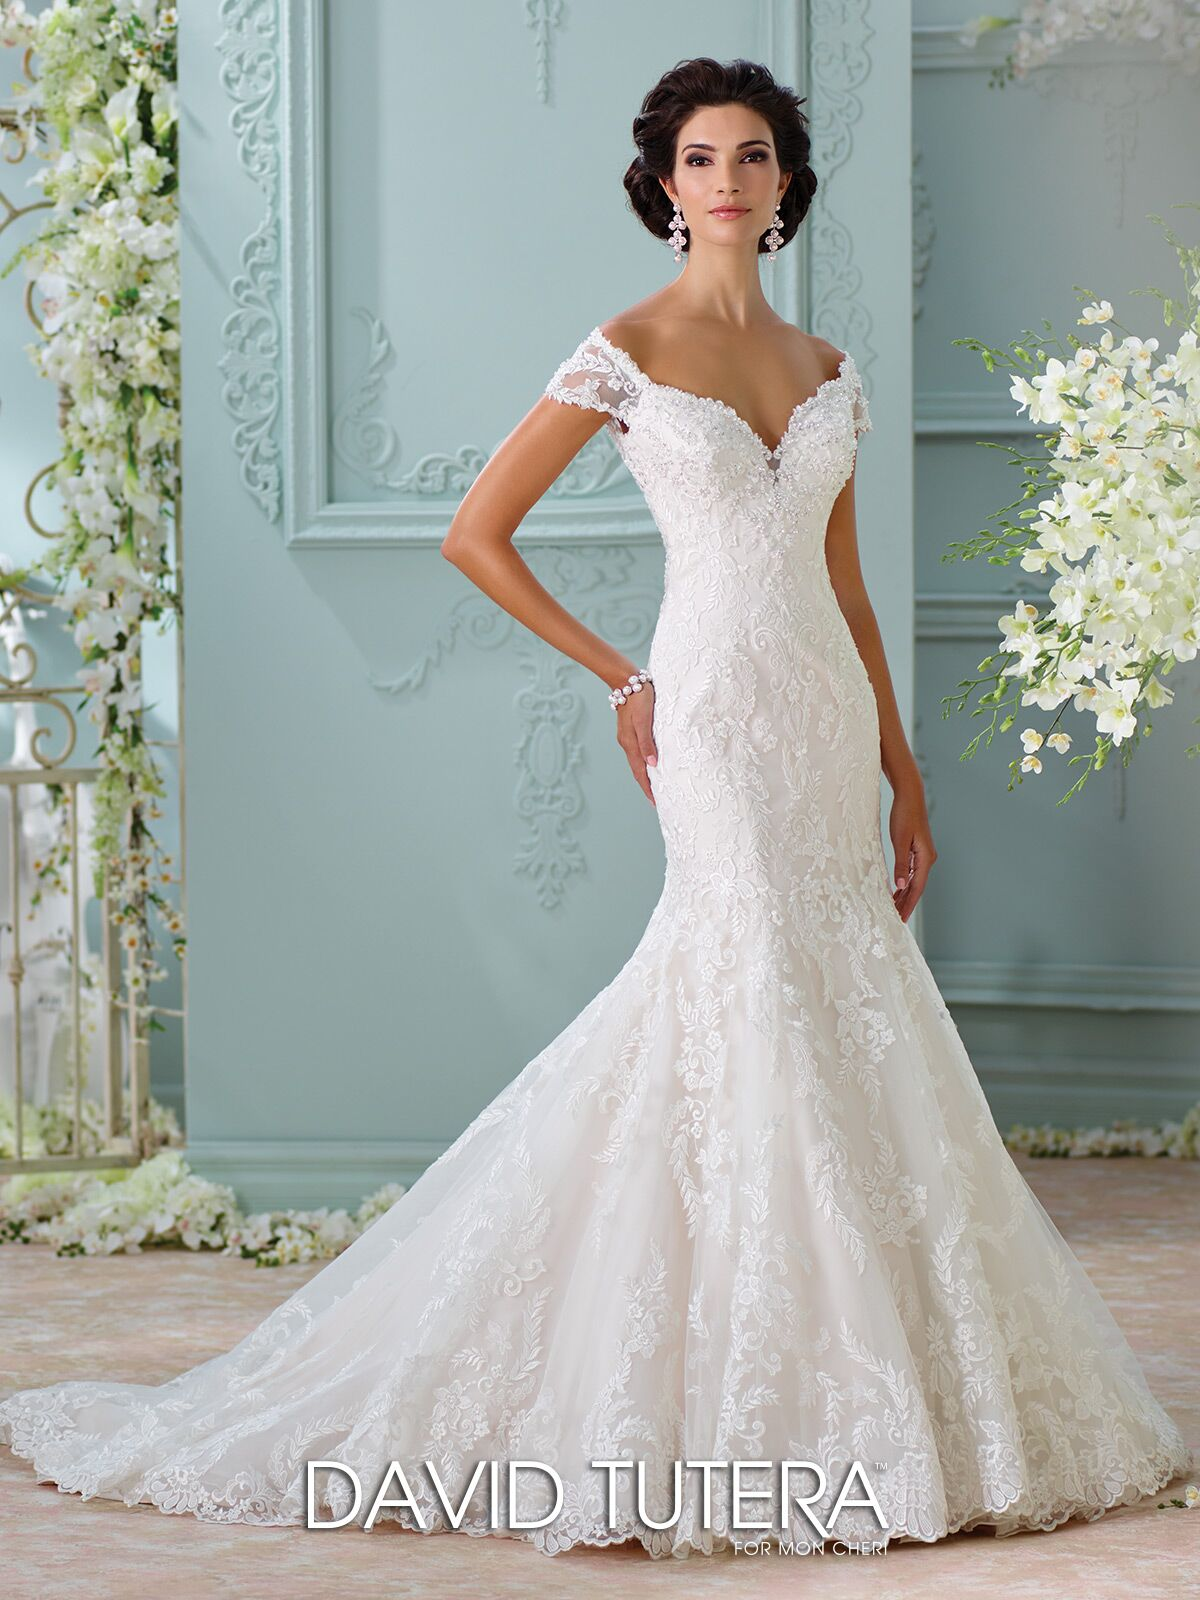 Bridal Salons in Dayton, OH - The Knot